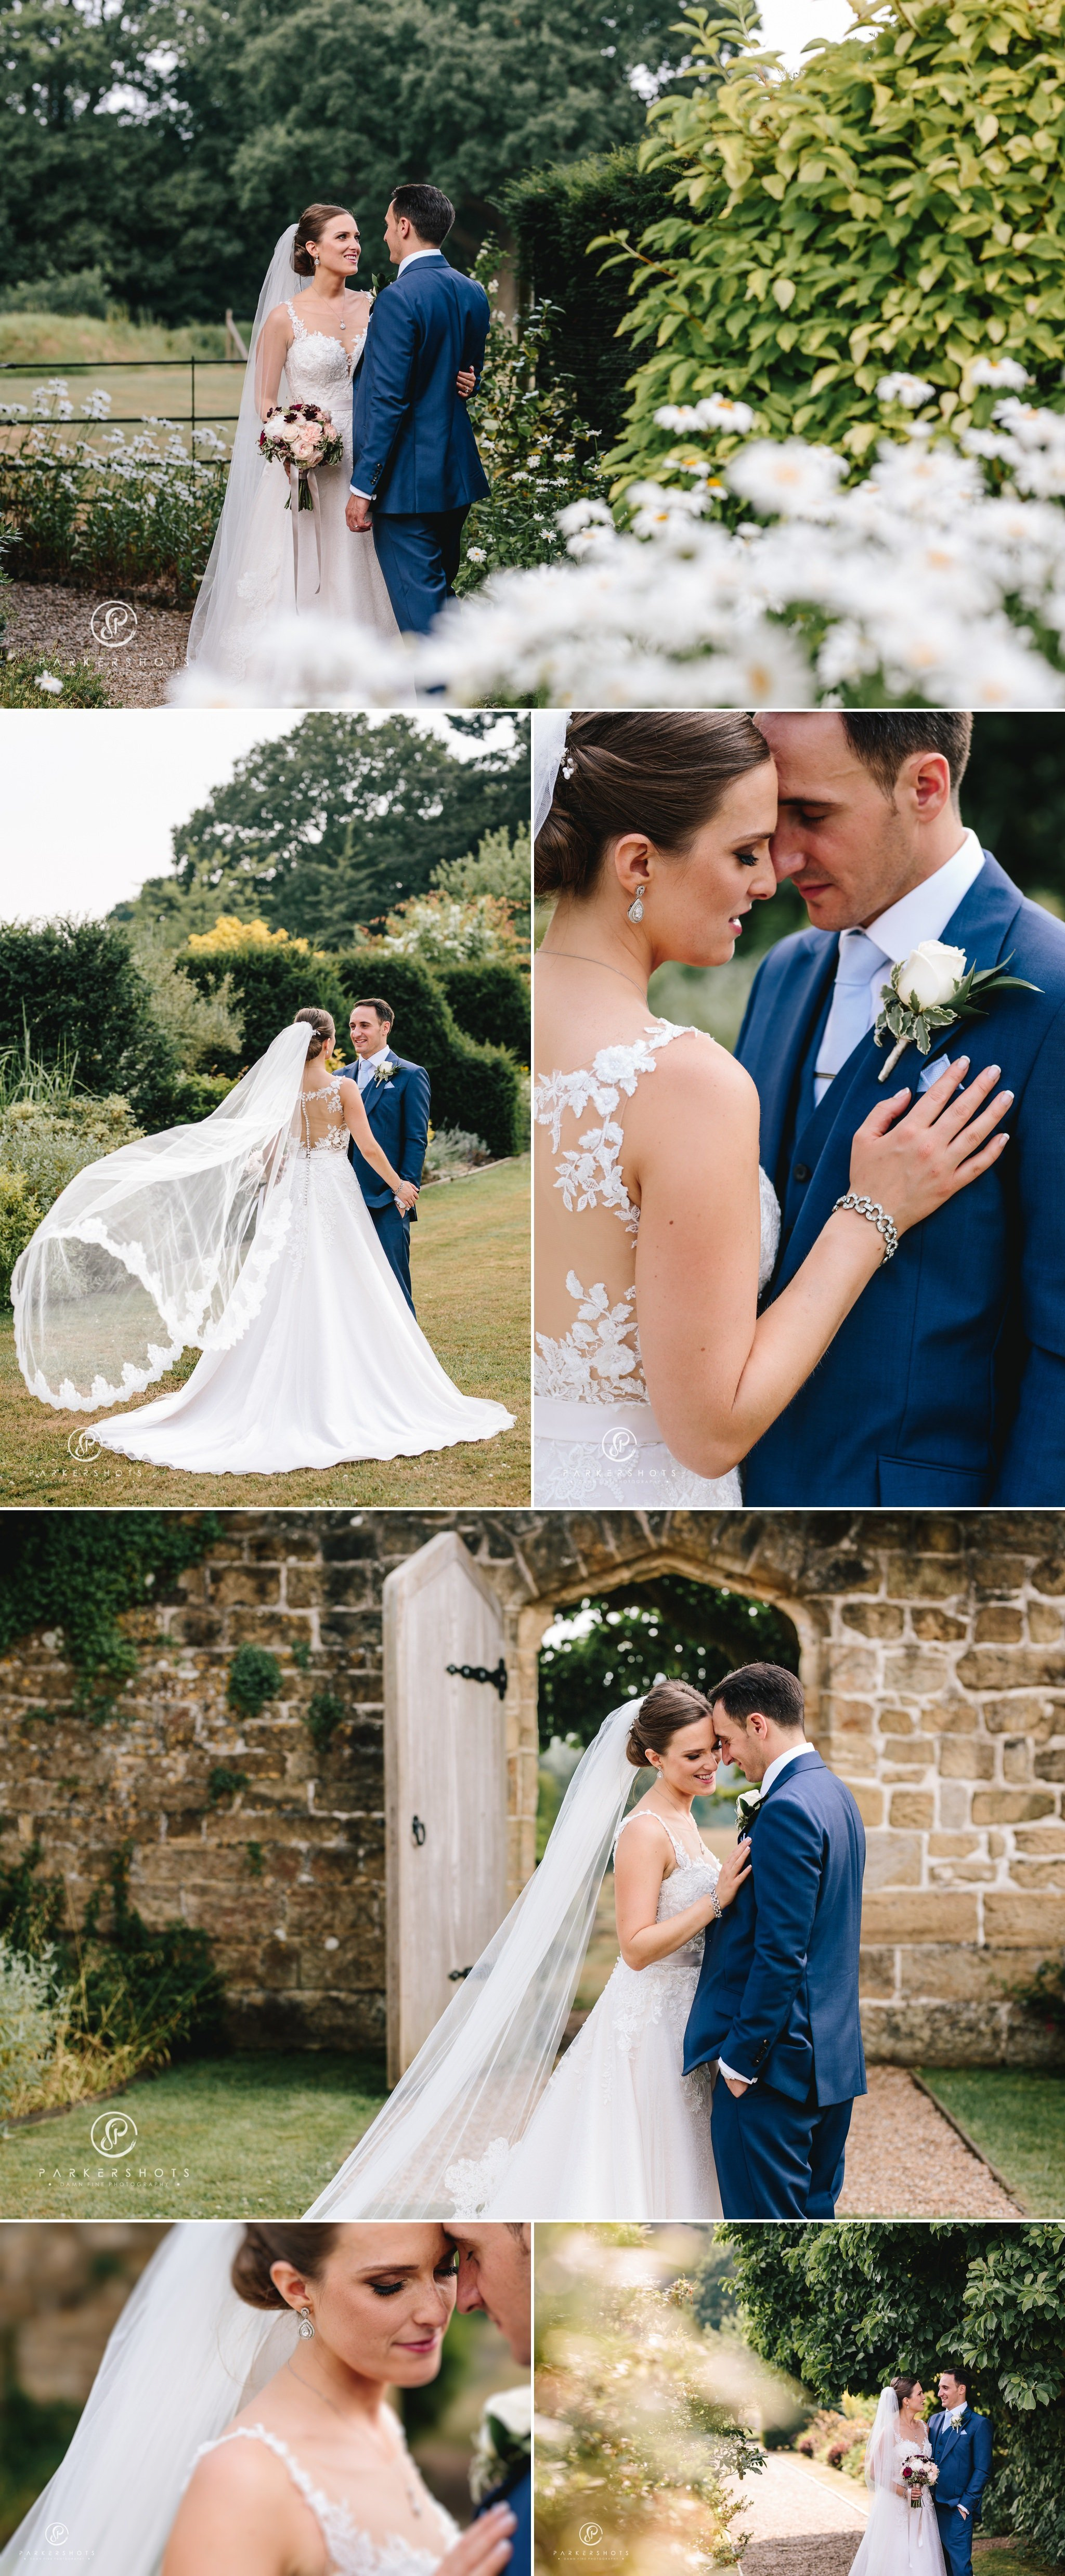 Wadhurst Castle Wedding Photographer - Portraits of the couple